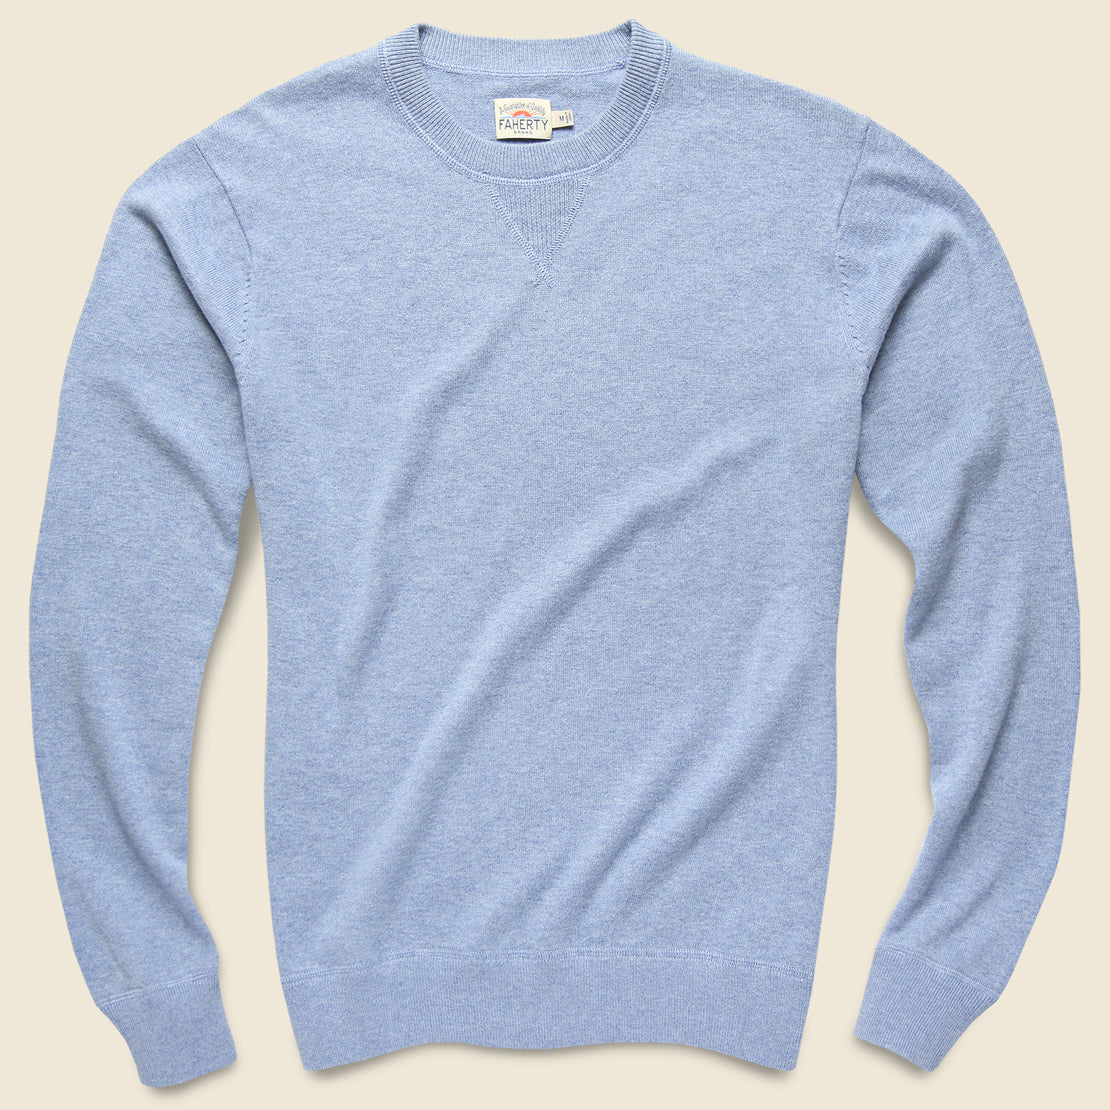 Faherty Sconset Crew Sweater - Blue Sky Heather